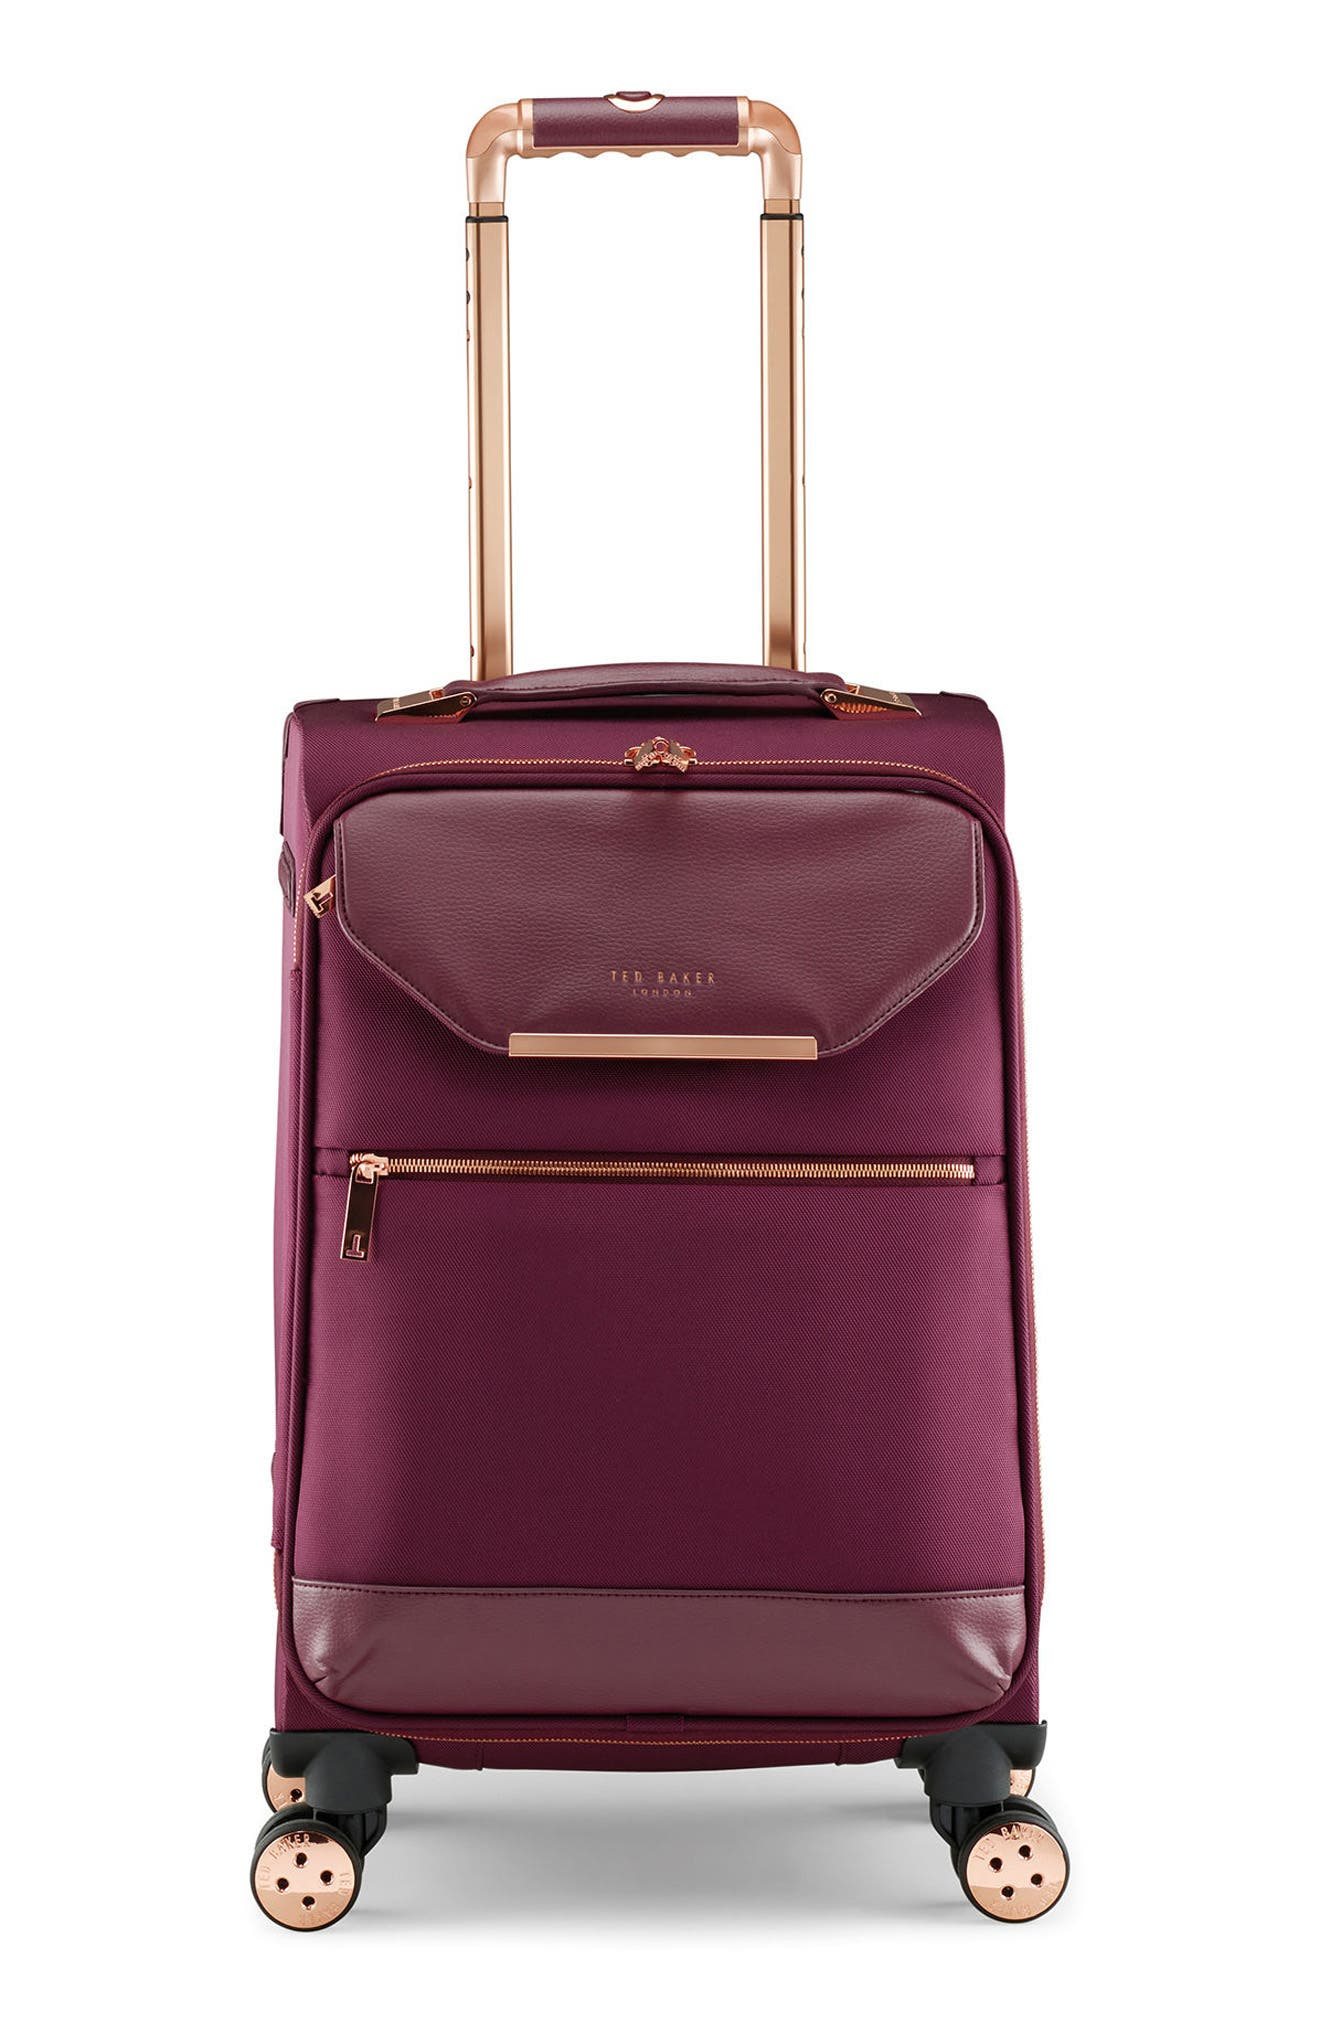 Alternate Image 1 Selected - Ted Baker London 22-Inch Spinner Trolley Packing Case